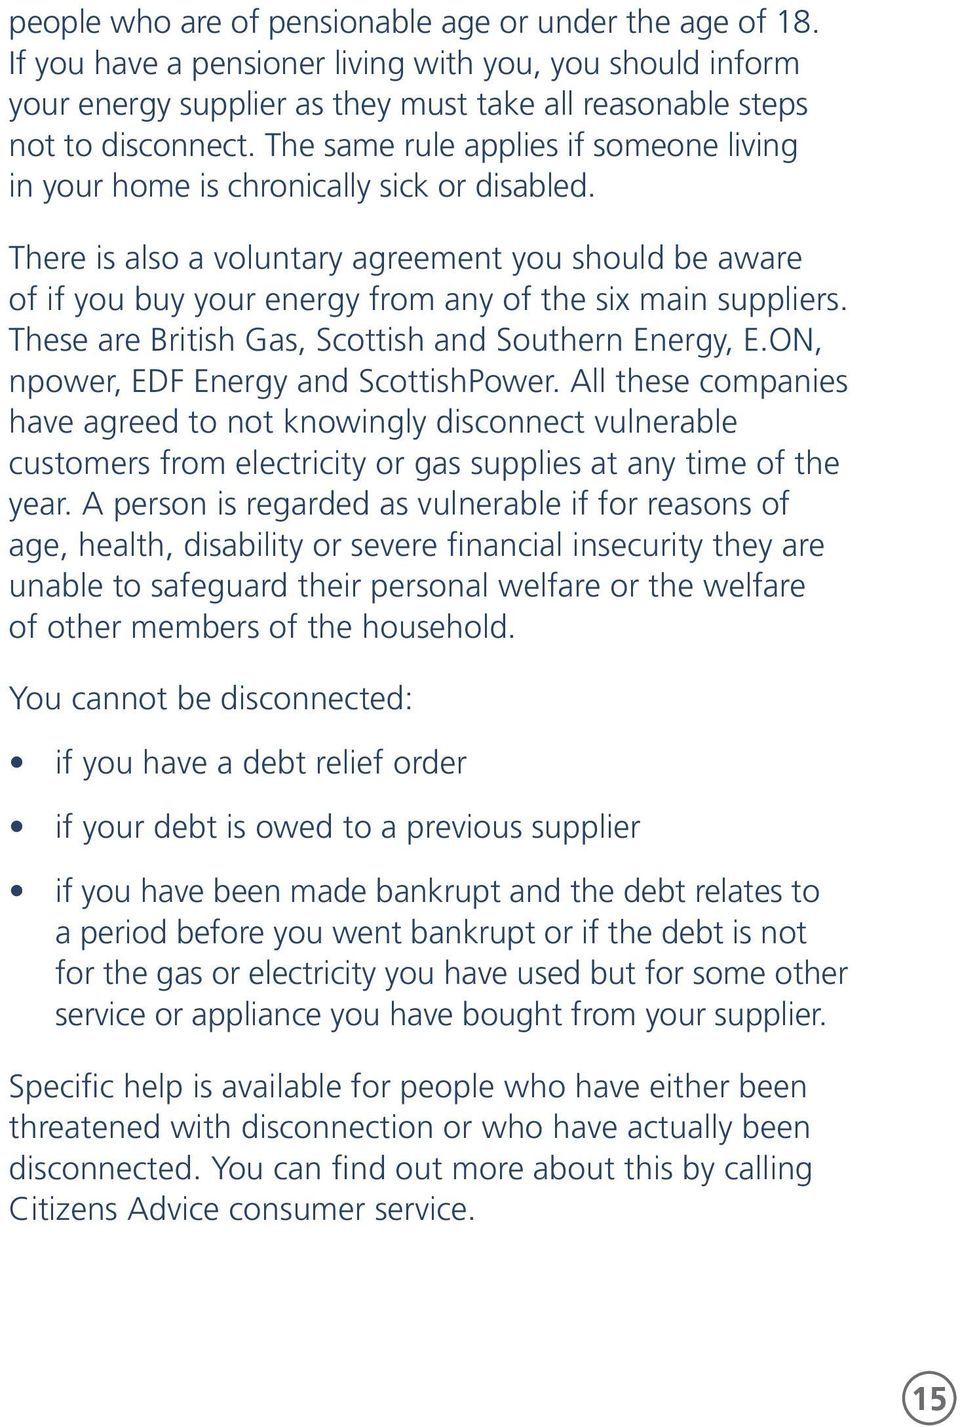 There is also a voluntary agreement you should be aware of if you buy your energy from any of the six main suppliers. These are British Gas, Scottish and Southern Energy, E.